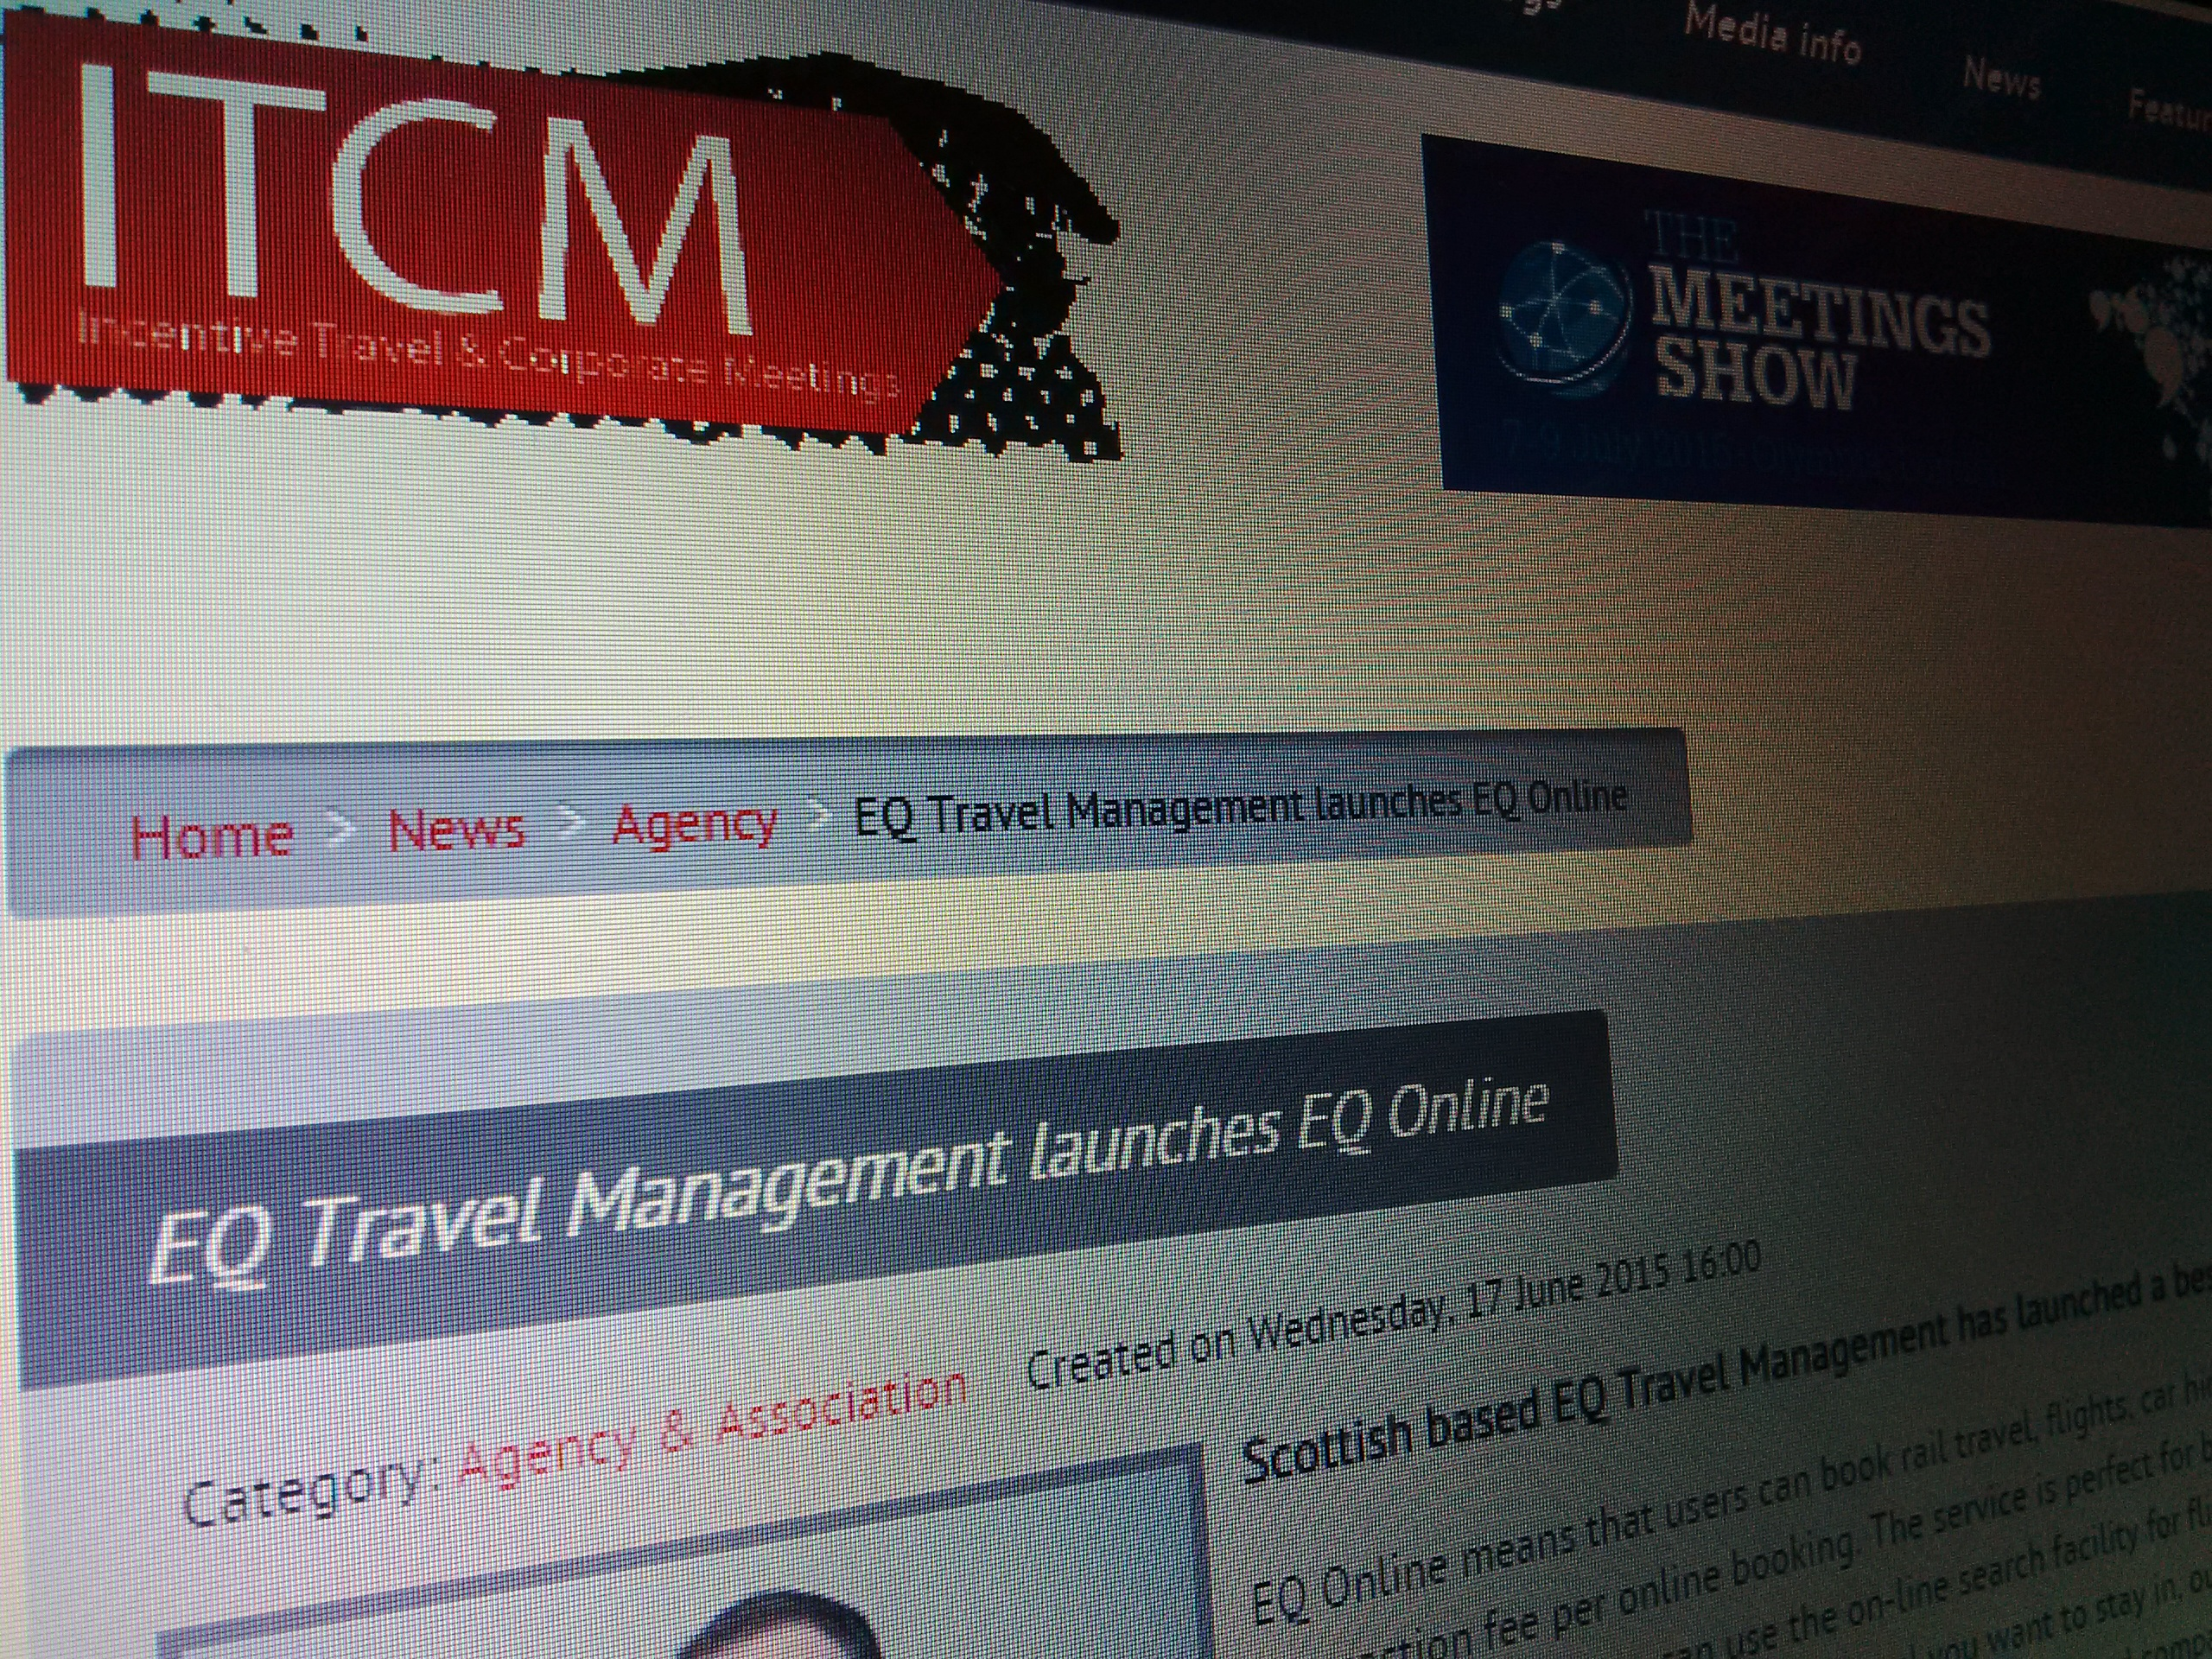 EQ Travel Management launches EQ Online